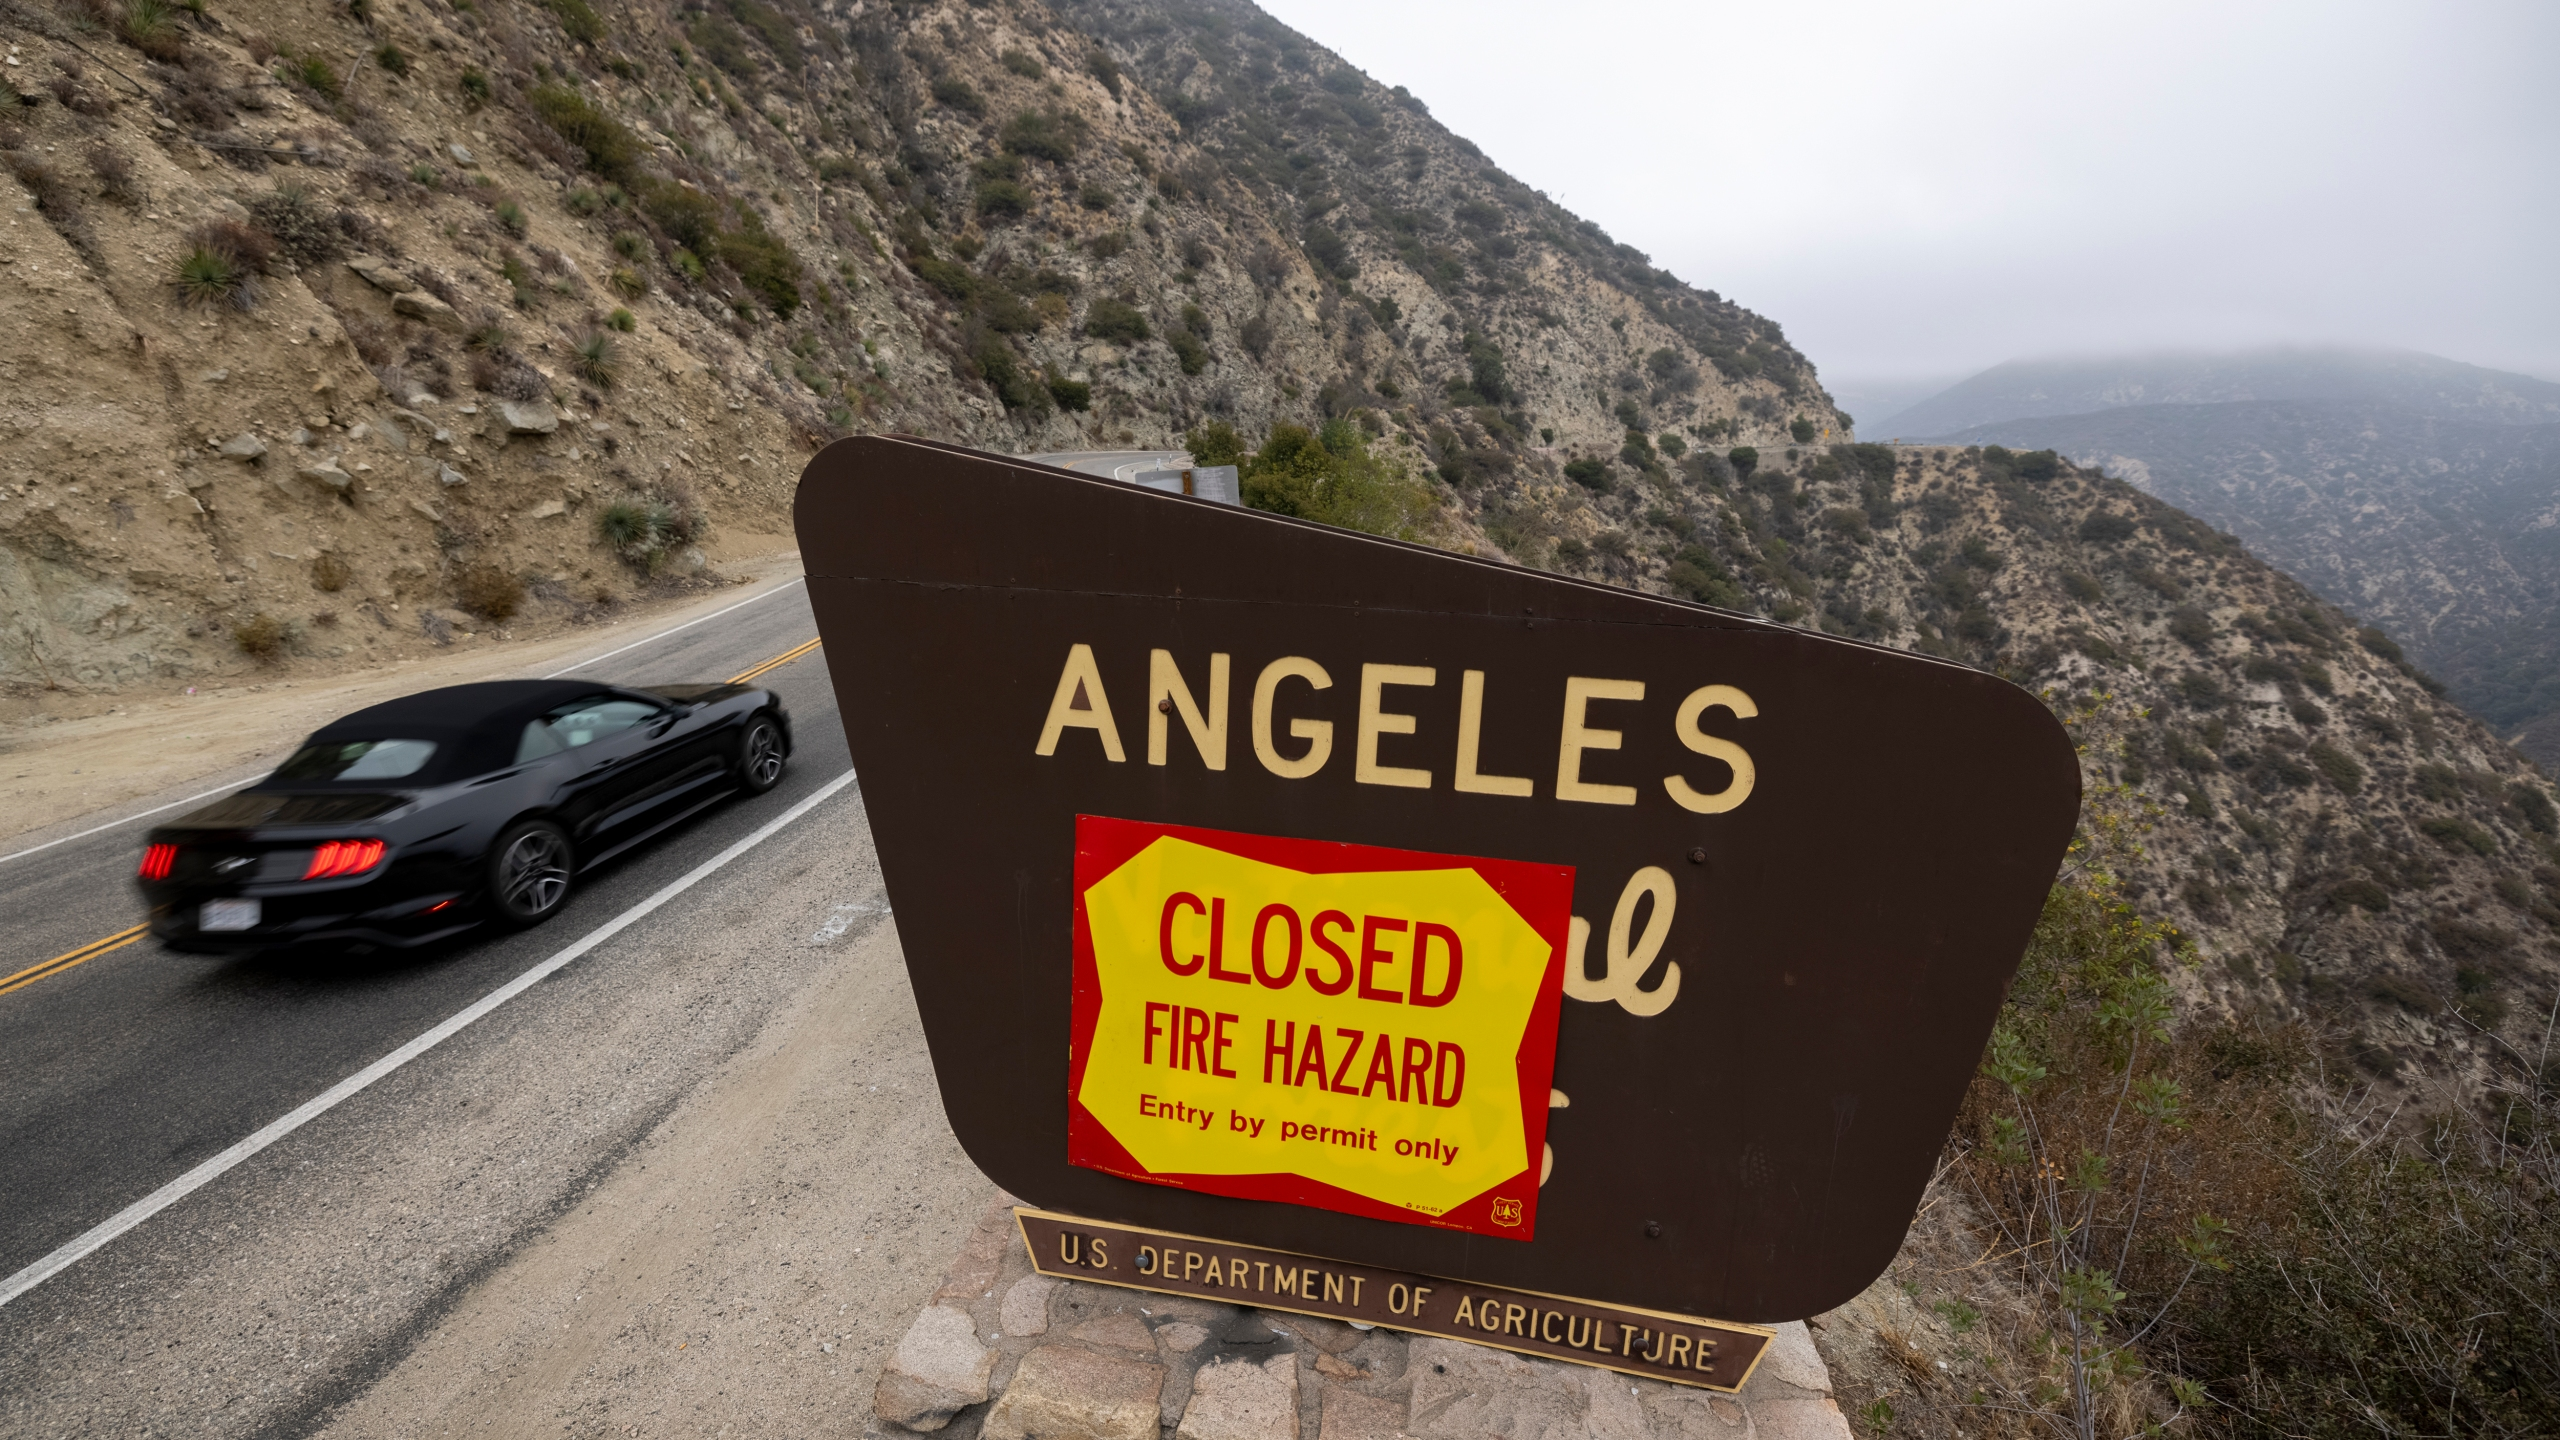 A motorcyclist passes forest closure signage along the Angeles Crest Highway in the Angeles National Forest on Sept. 2, 2021, near La Canada Flintridge, California. (David McNew/Getty Images)